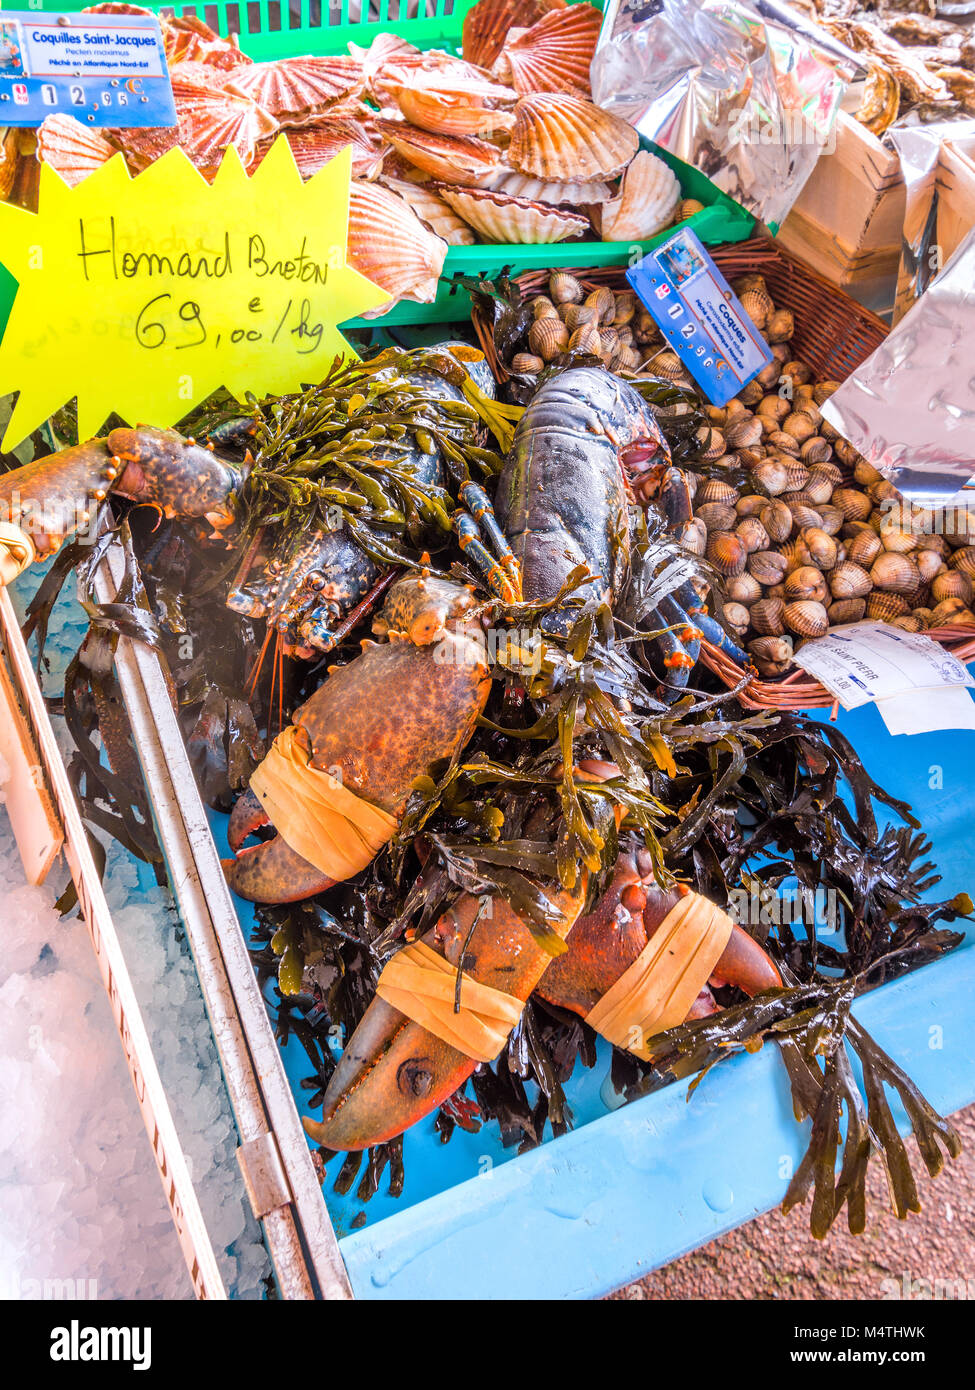 Live lobster on market stall - France. - Stock Image